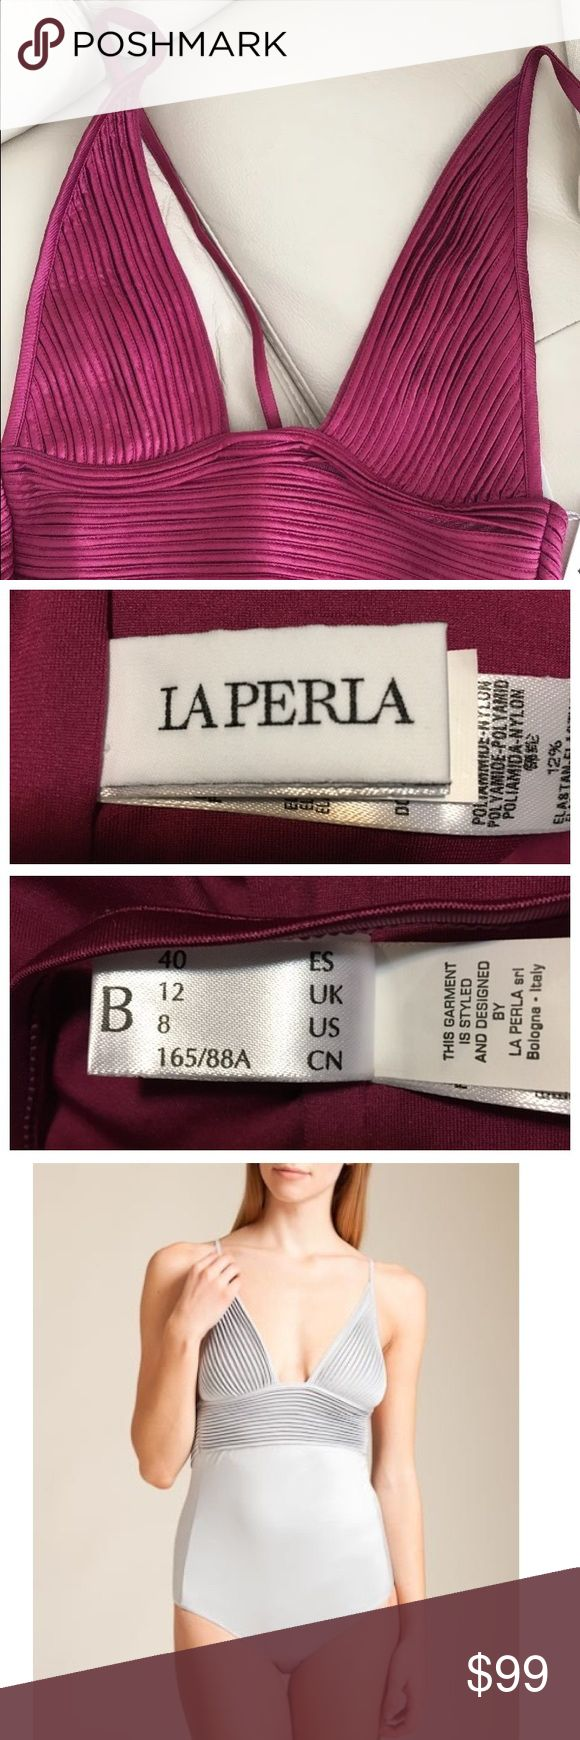 La Perla Swimwear NWOT Beautiful and glamorous one piece tuxedo swimwear collection from La Perla. Wireless triangle cups and a deep v neckLine. Alluring open back. Can be worn halter style or with straight shoulder straps. Luxurious satin fabric looks amazing in the sunlight. Brand new never worn but no tags. Color- purple/wine. Retailed for $924. Size 8 but runs small on the top-fits a small chest La Perla Swim One Pieces